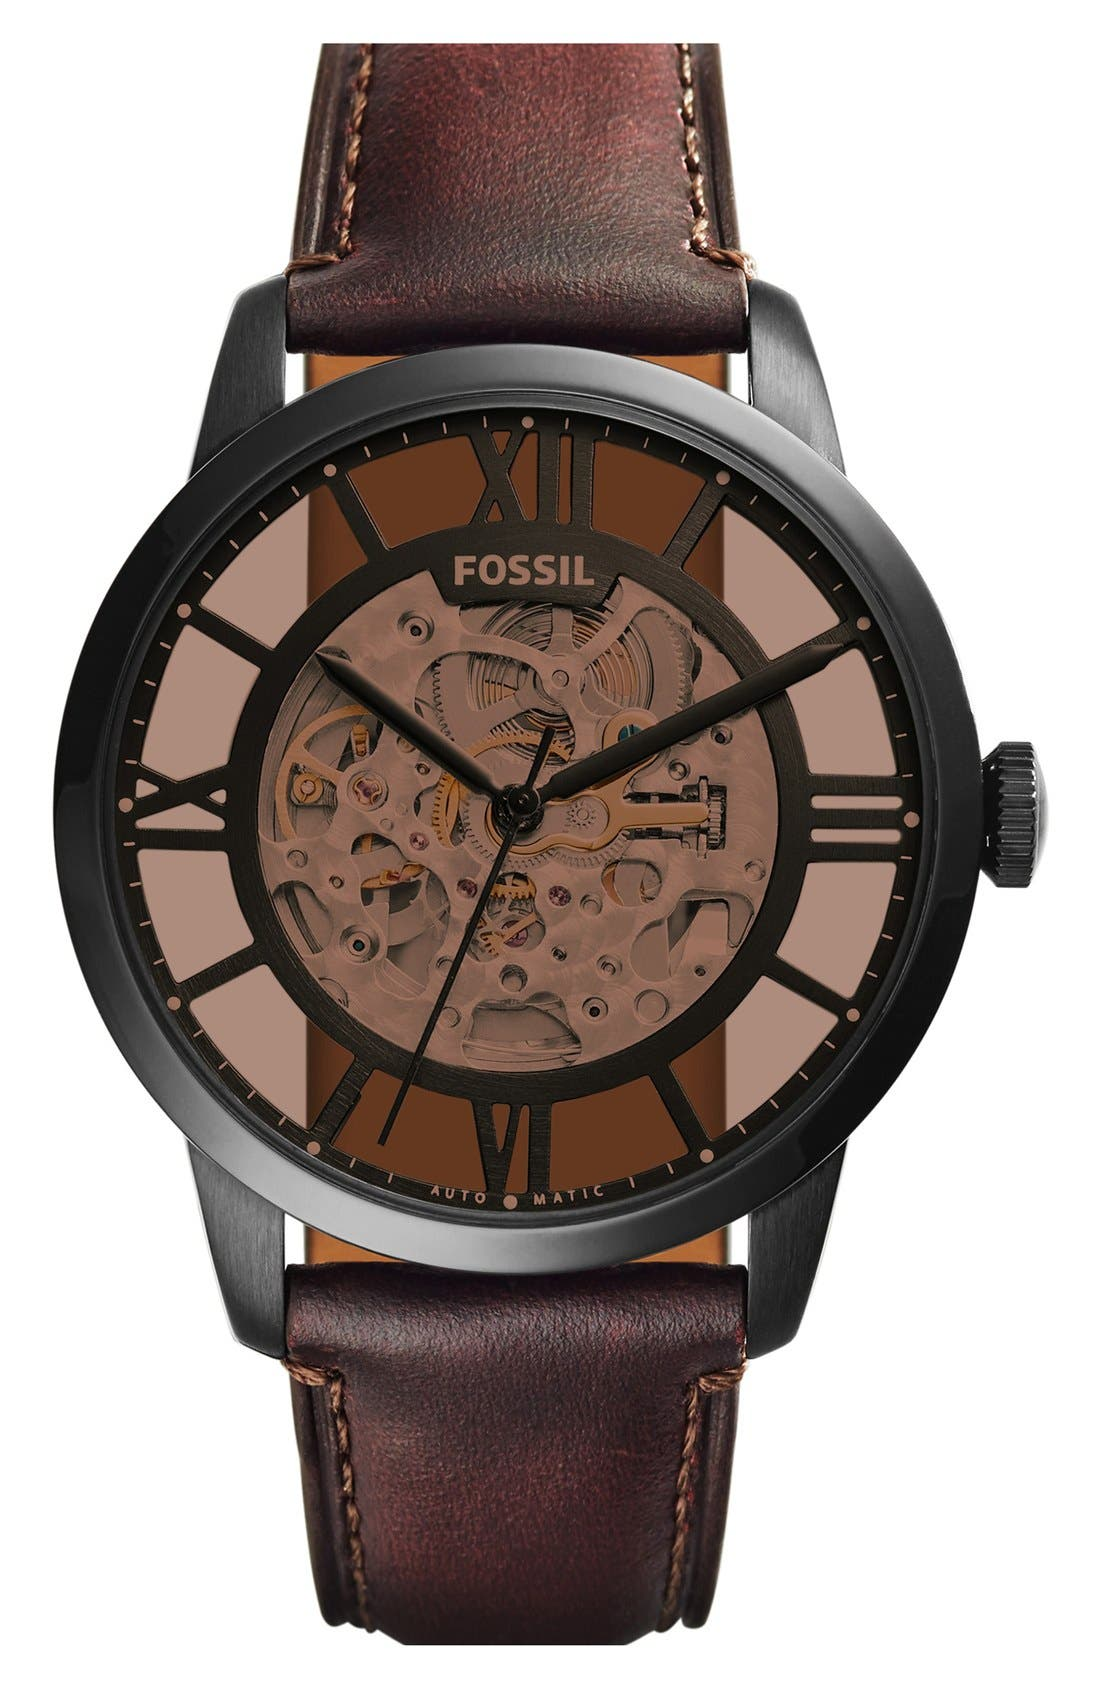 FOSSIL, 'Townsman' Automatic Leather Strap Watch, 44mm, Main thumbnail 1, color, BROWN/ AMBER